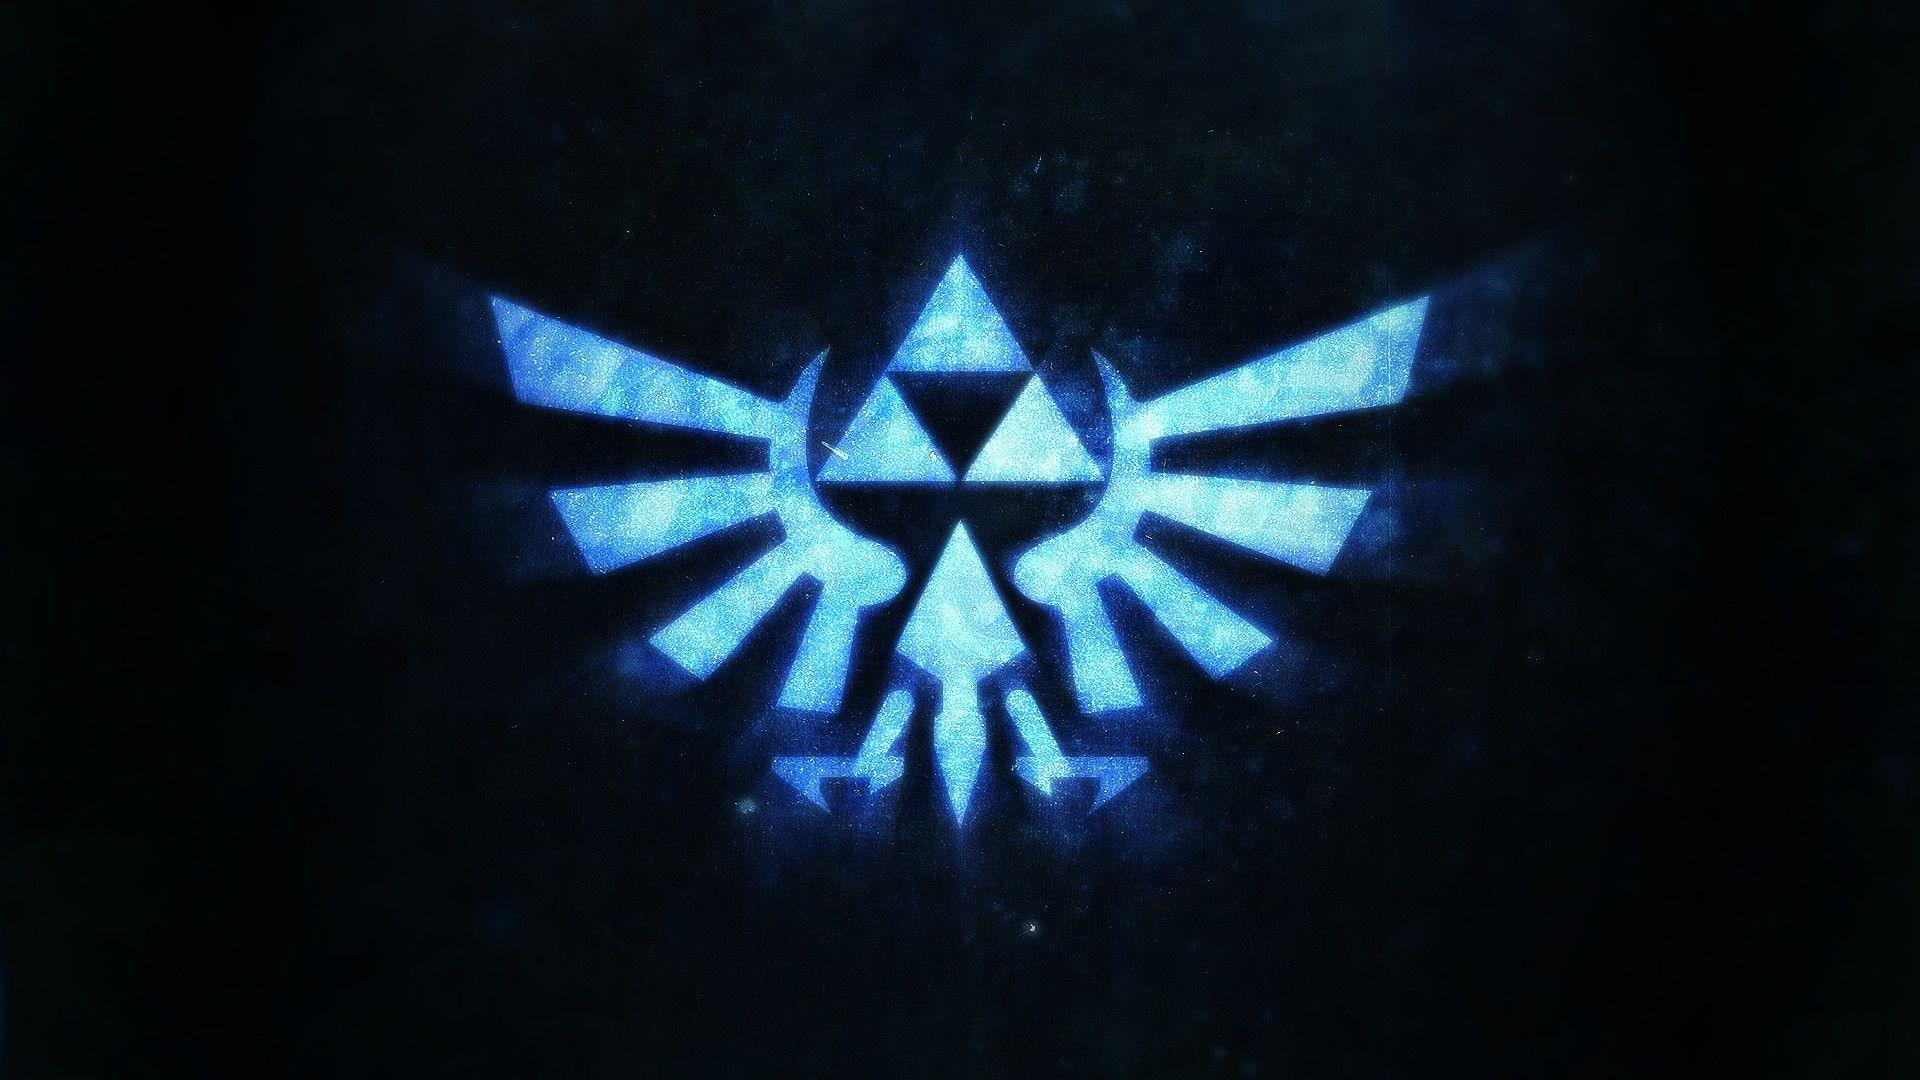 Hd wallpaper zelda - Blue Triforce Logo Hd Wallpaper 1920x1080